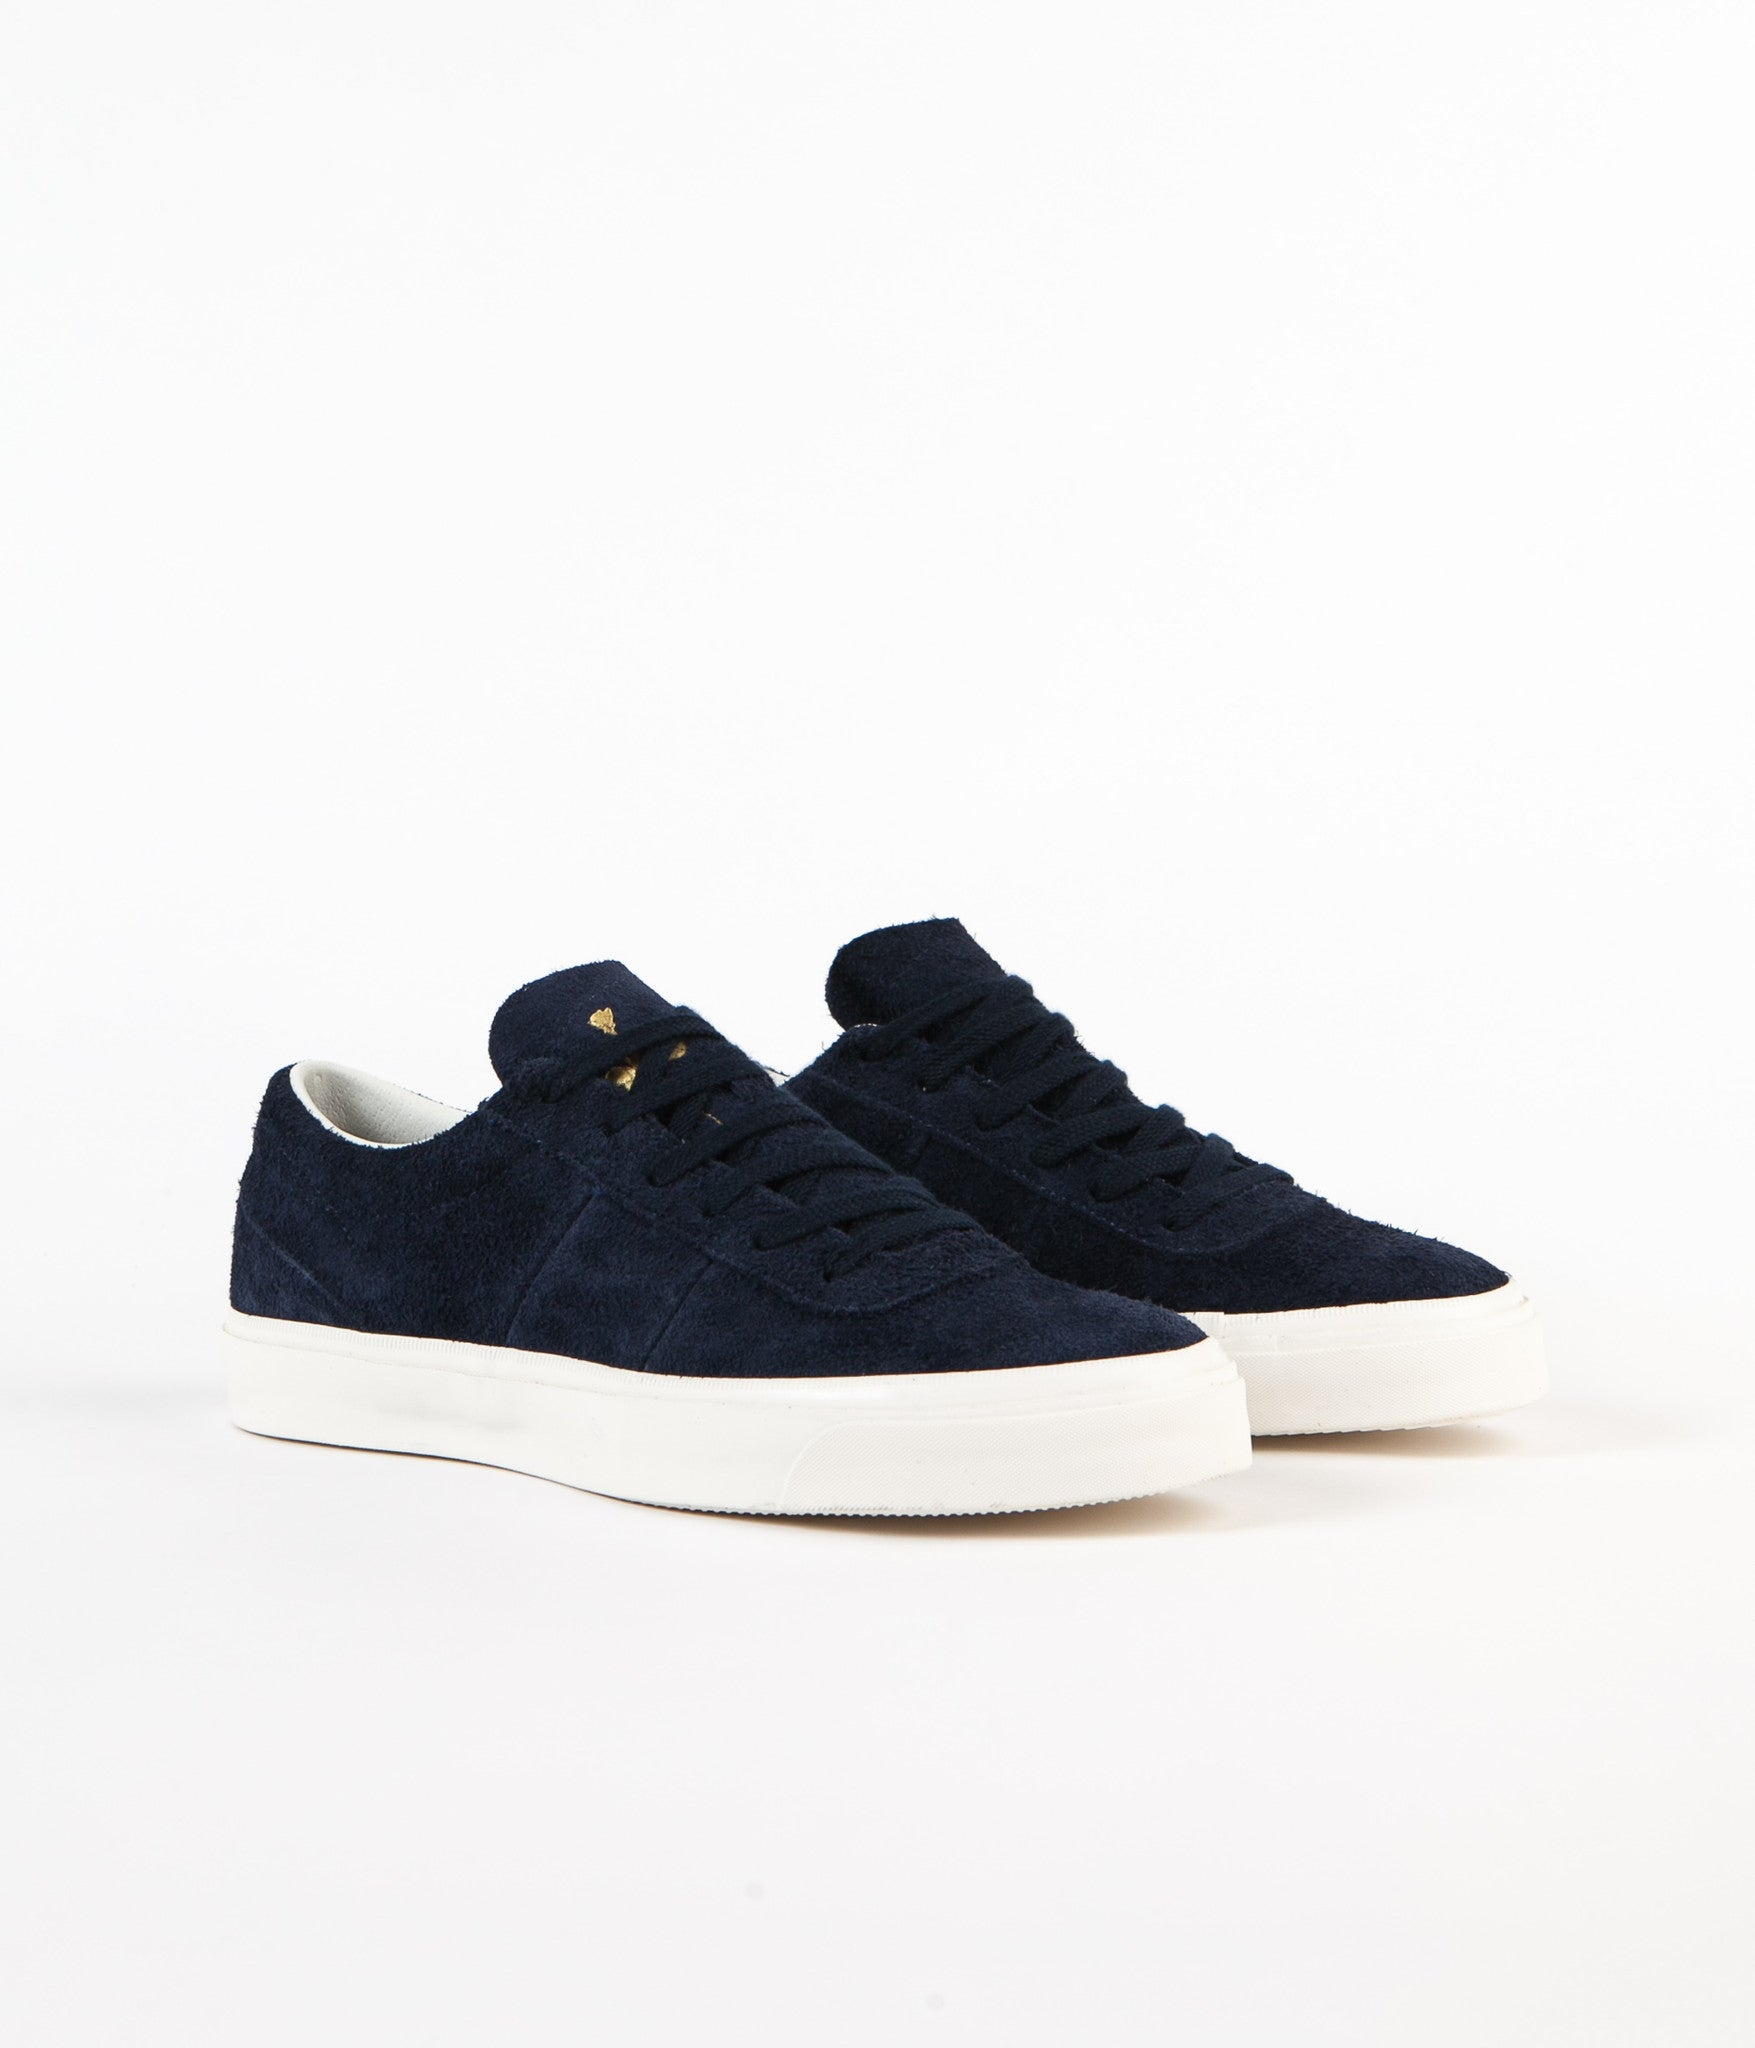 73b5a8285f55 ... Converse One Star Ox CC Sage Elsesser Shoes - Obsidian   Obsidian    Egret ...